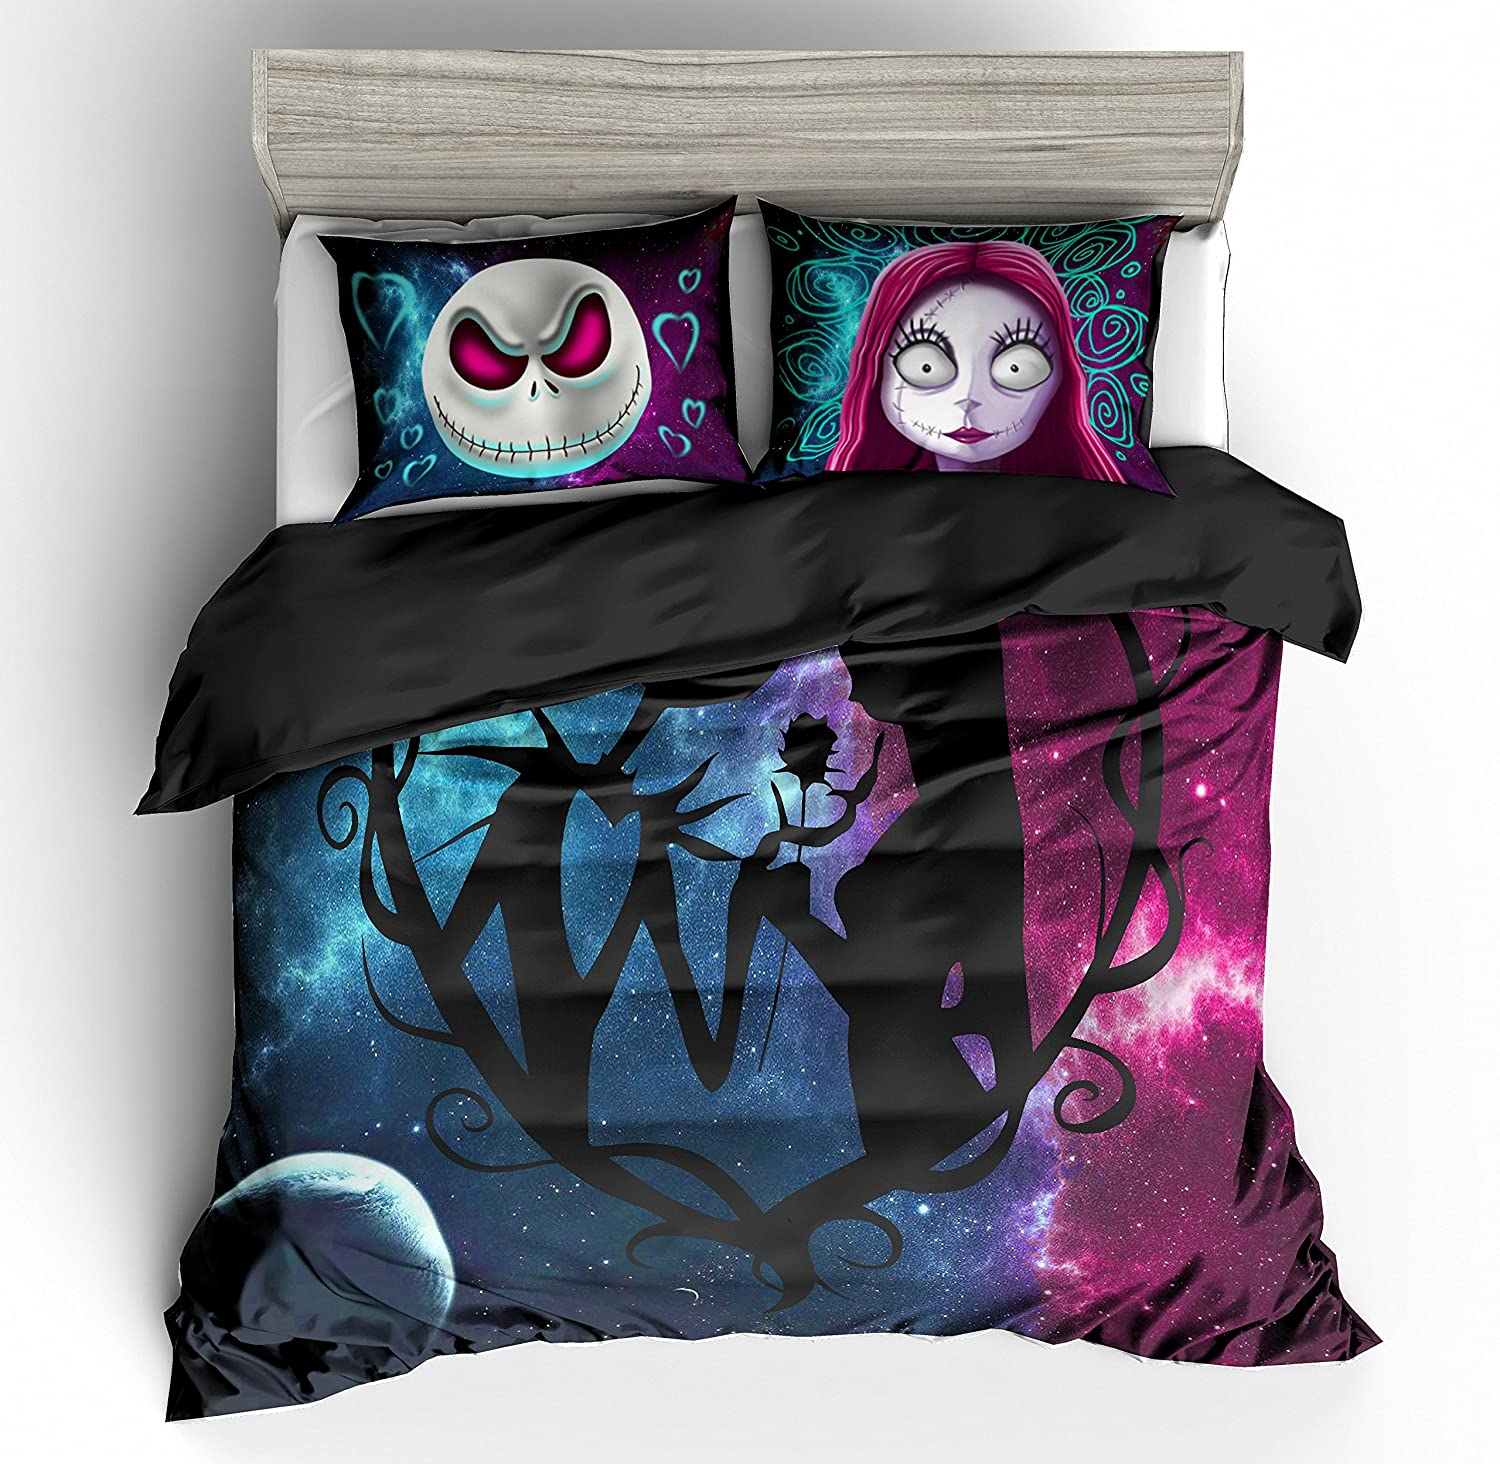 Amazon.com: KTLRR 3D Nightmare Before Christmas Duvet Cover Sets ...